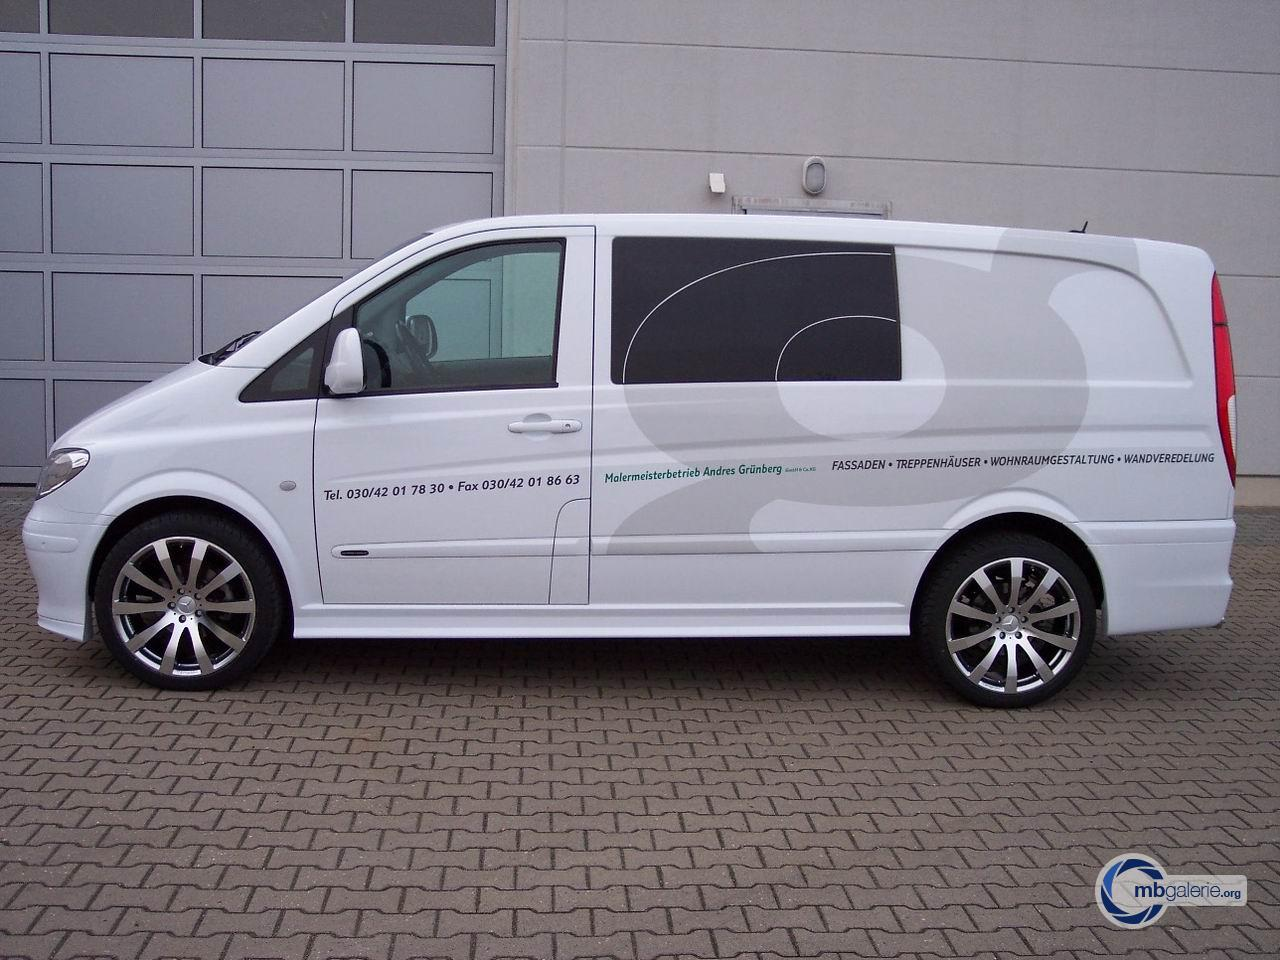 mercedes vito viano w639 tuning 2008. Black Bedroom Furniture Sets. Home Design Ideas